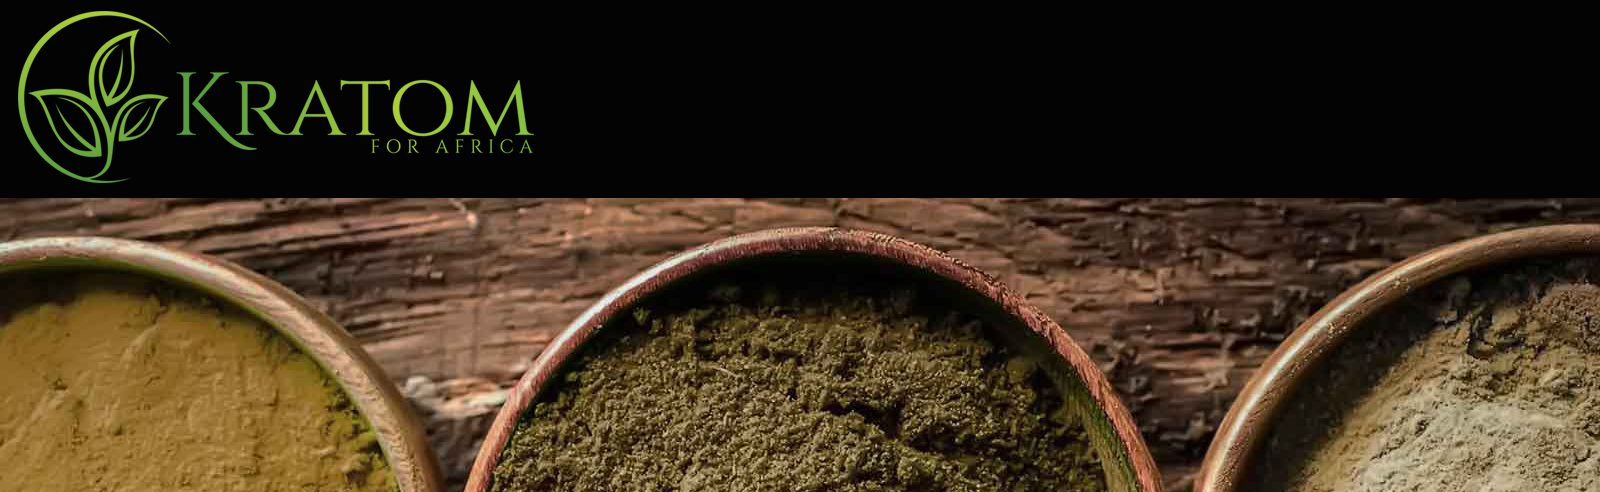 kratom useful info